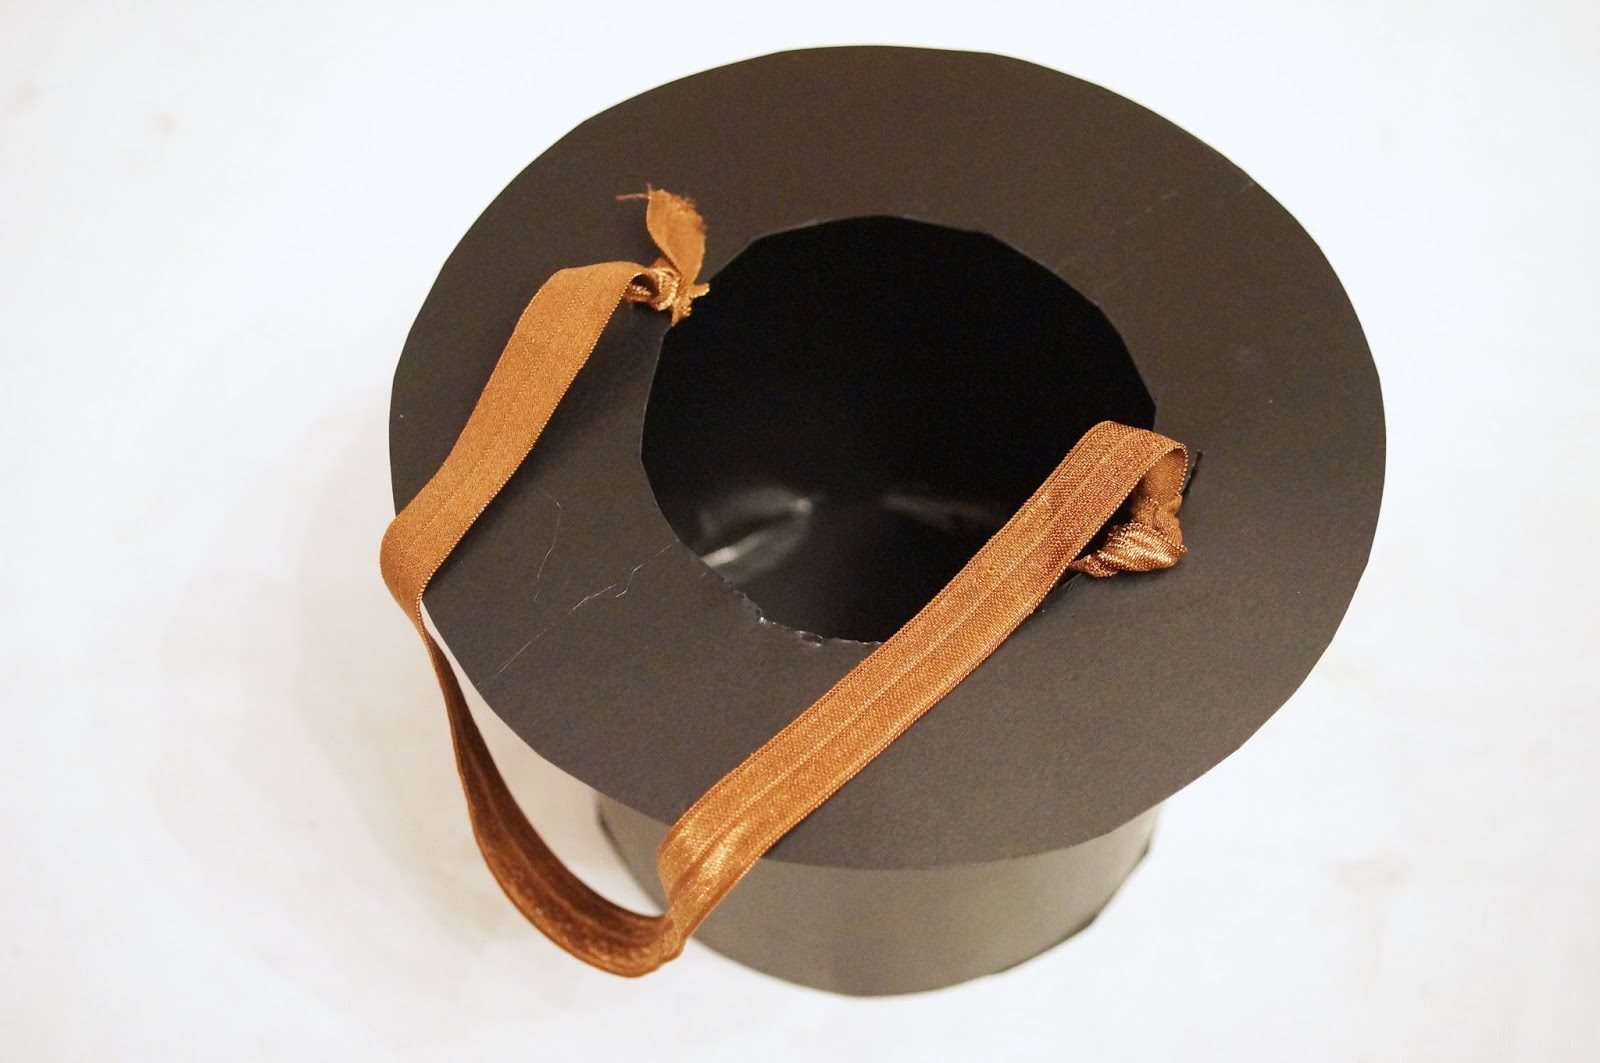 DIY Top Hat Tutorial - Click through for step by step instructions